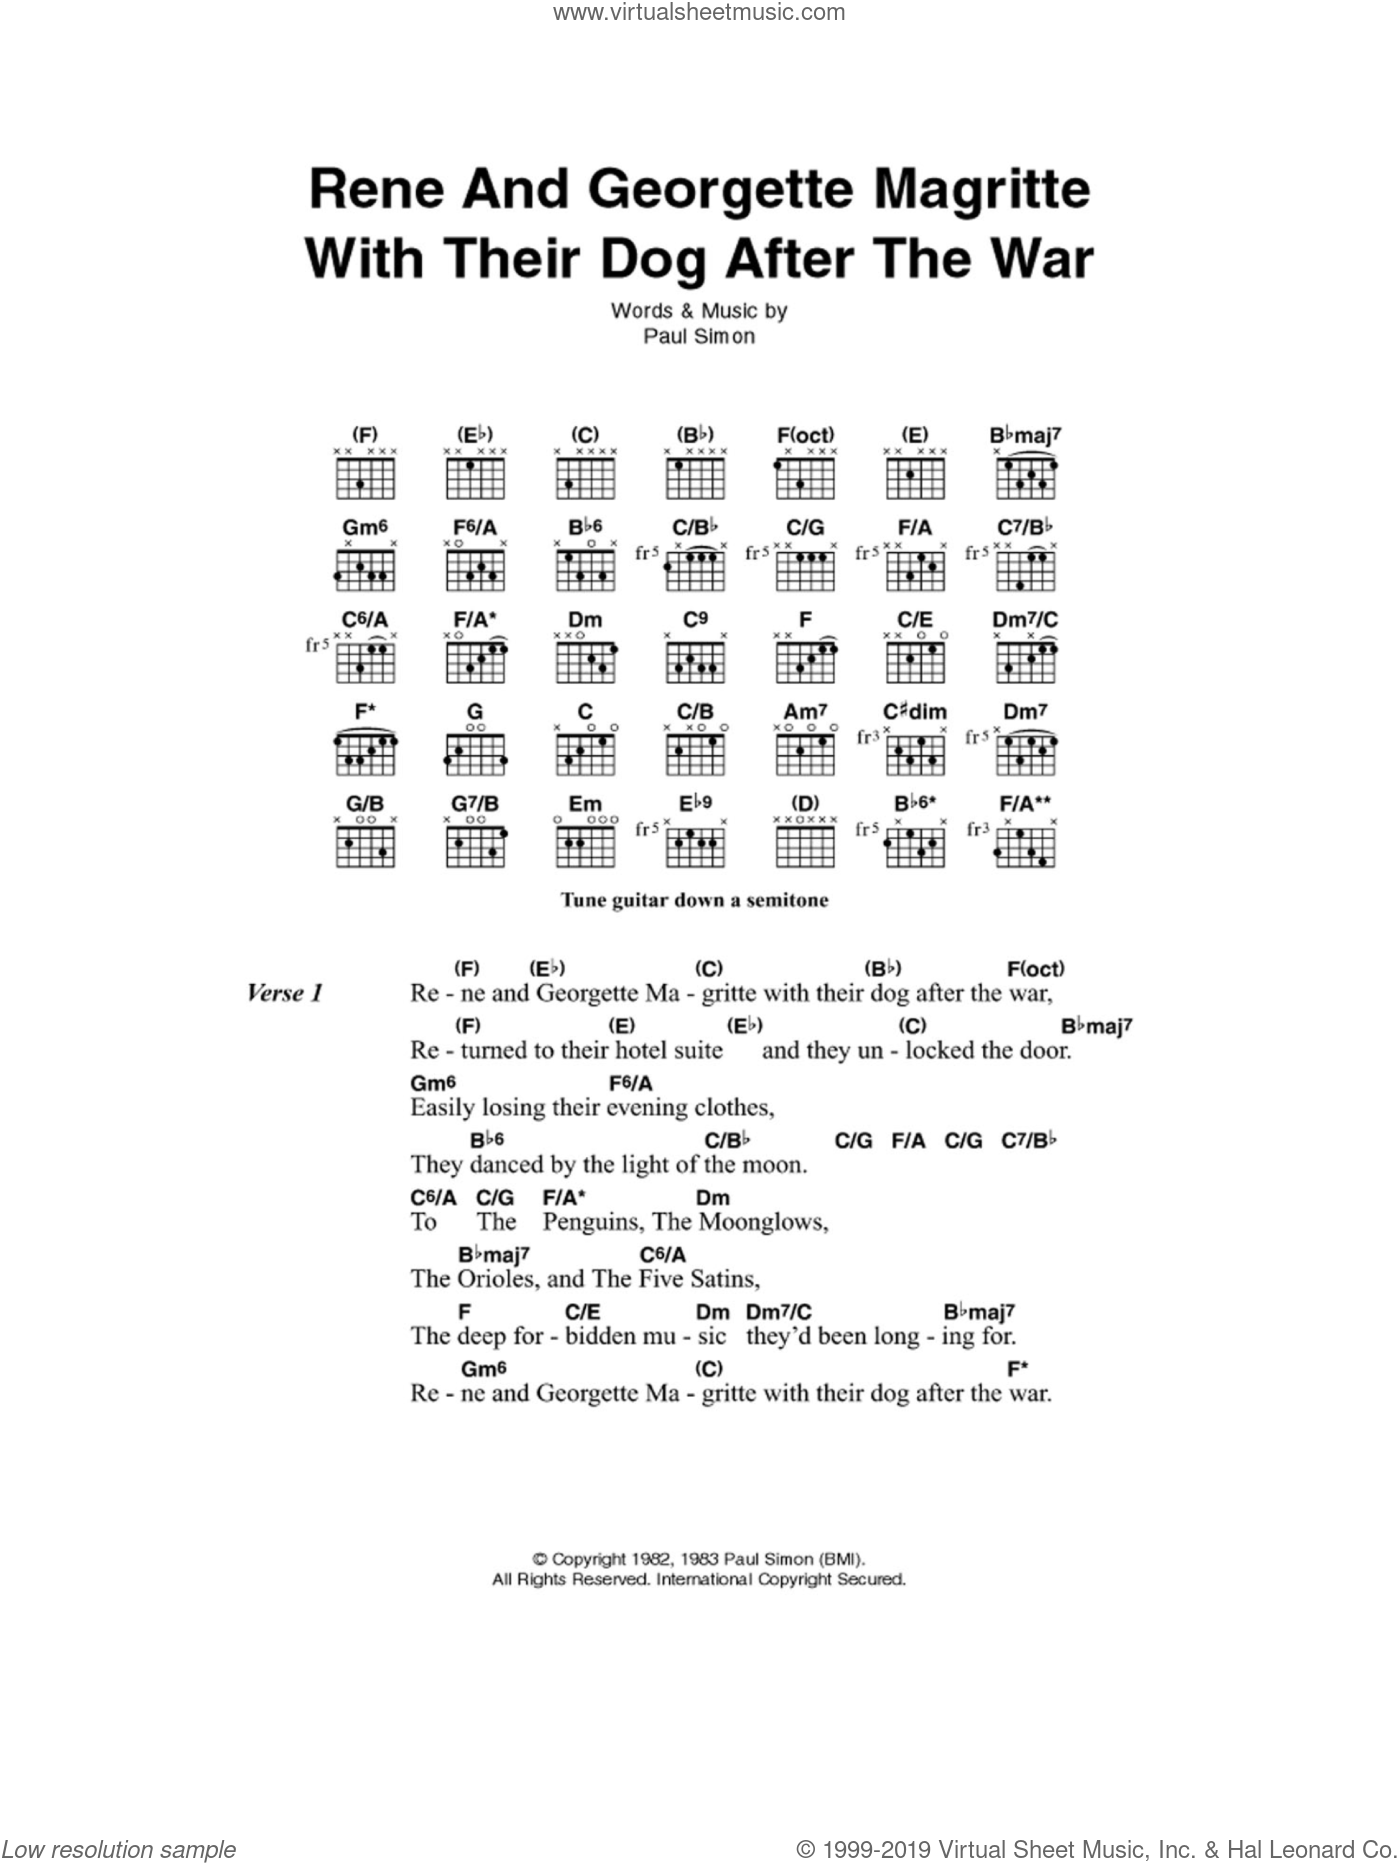 Rene And Georgette Magritte With Their Dog After The War sheet music for guitar (chords) by Paul Simon. Score Image Preview.